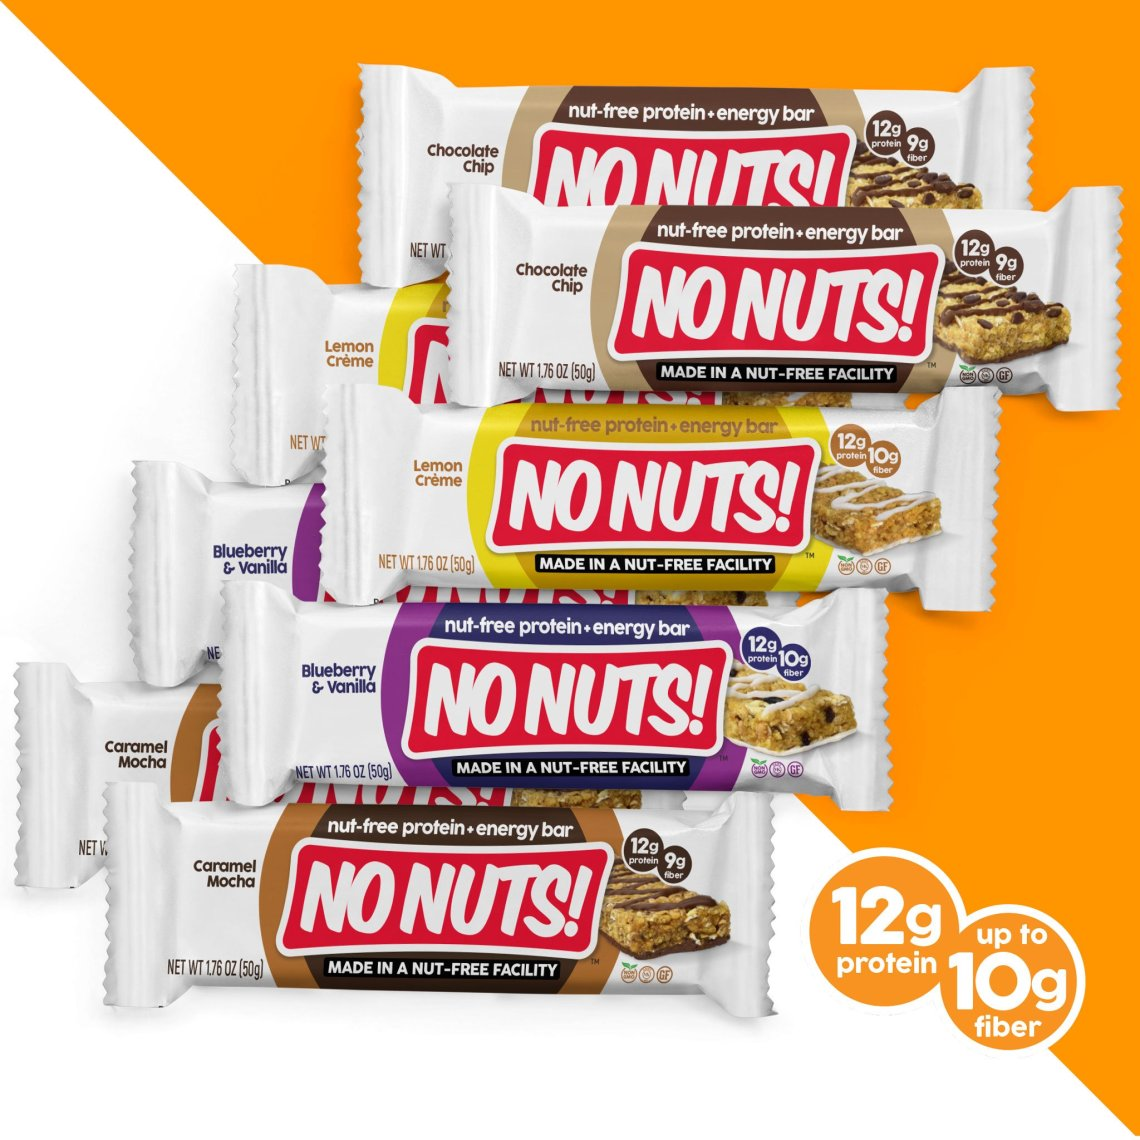 no nuts! protein flavors nut free and gluten-free protein bars